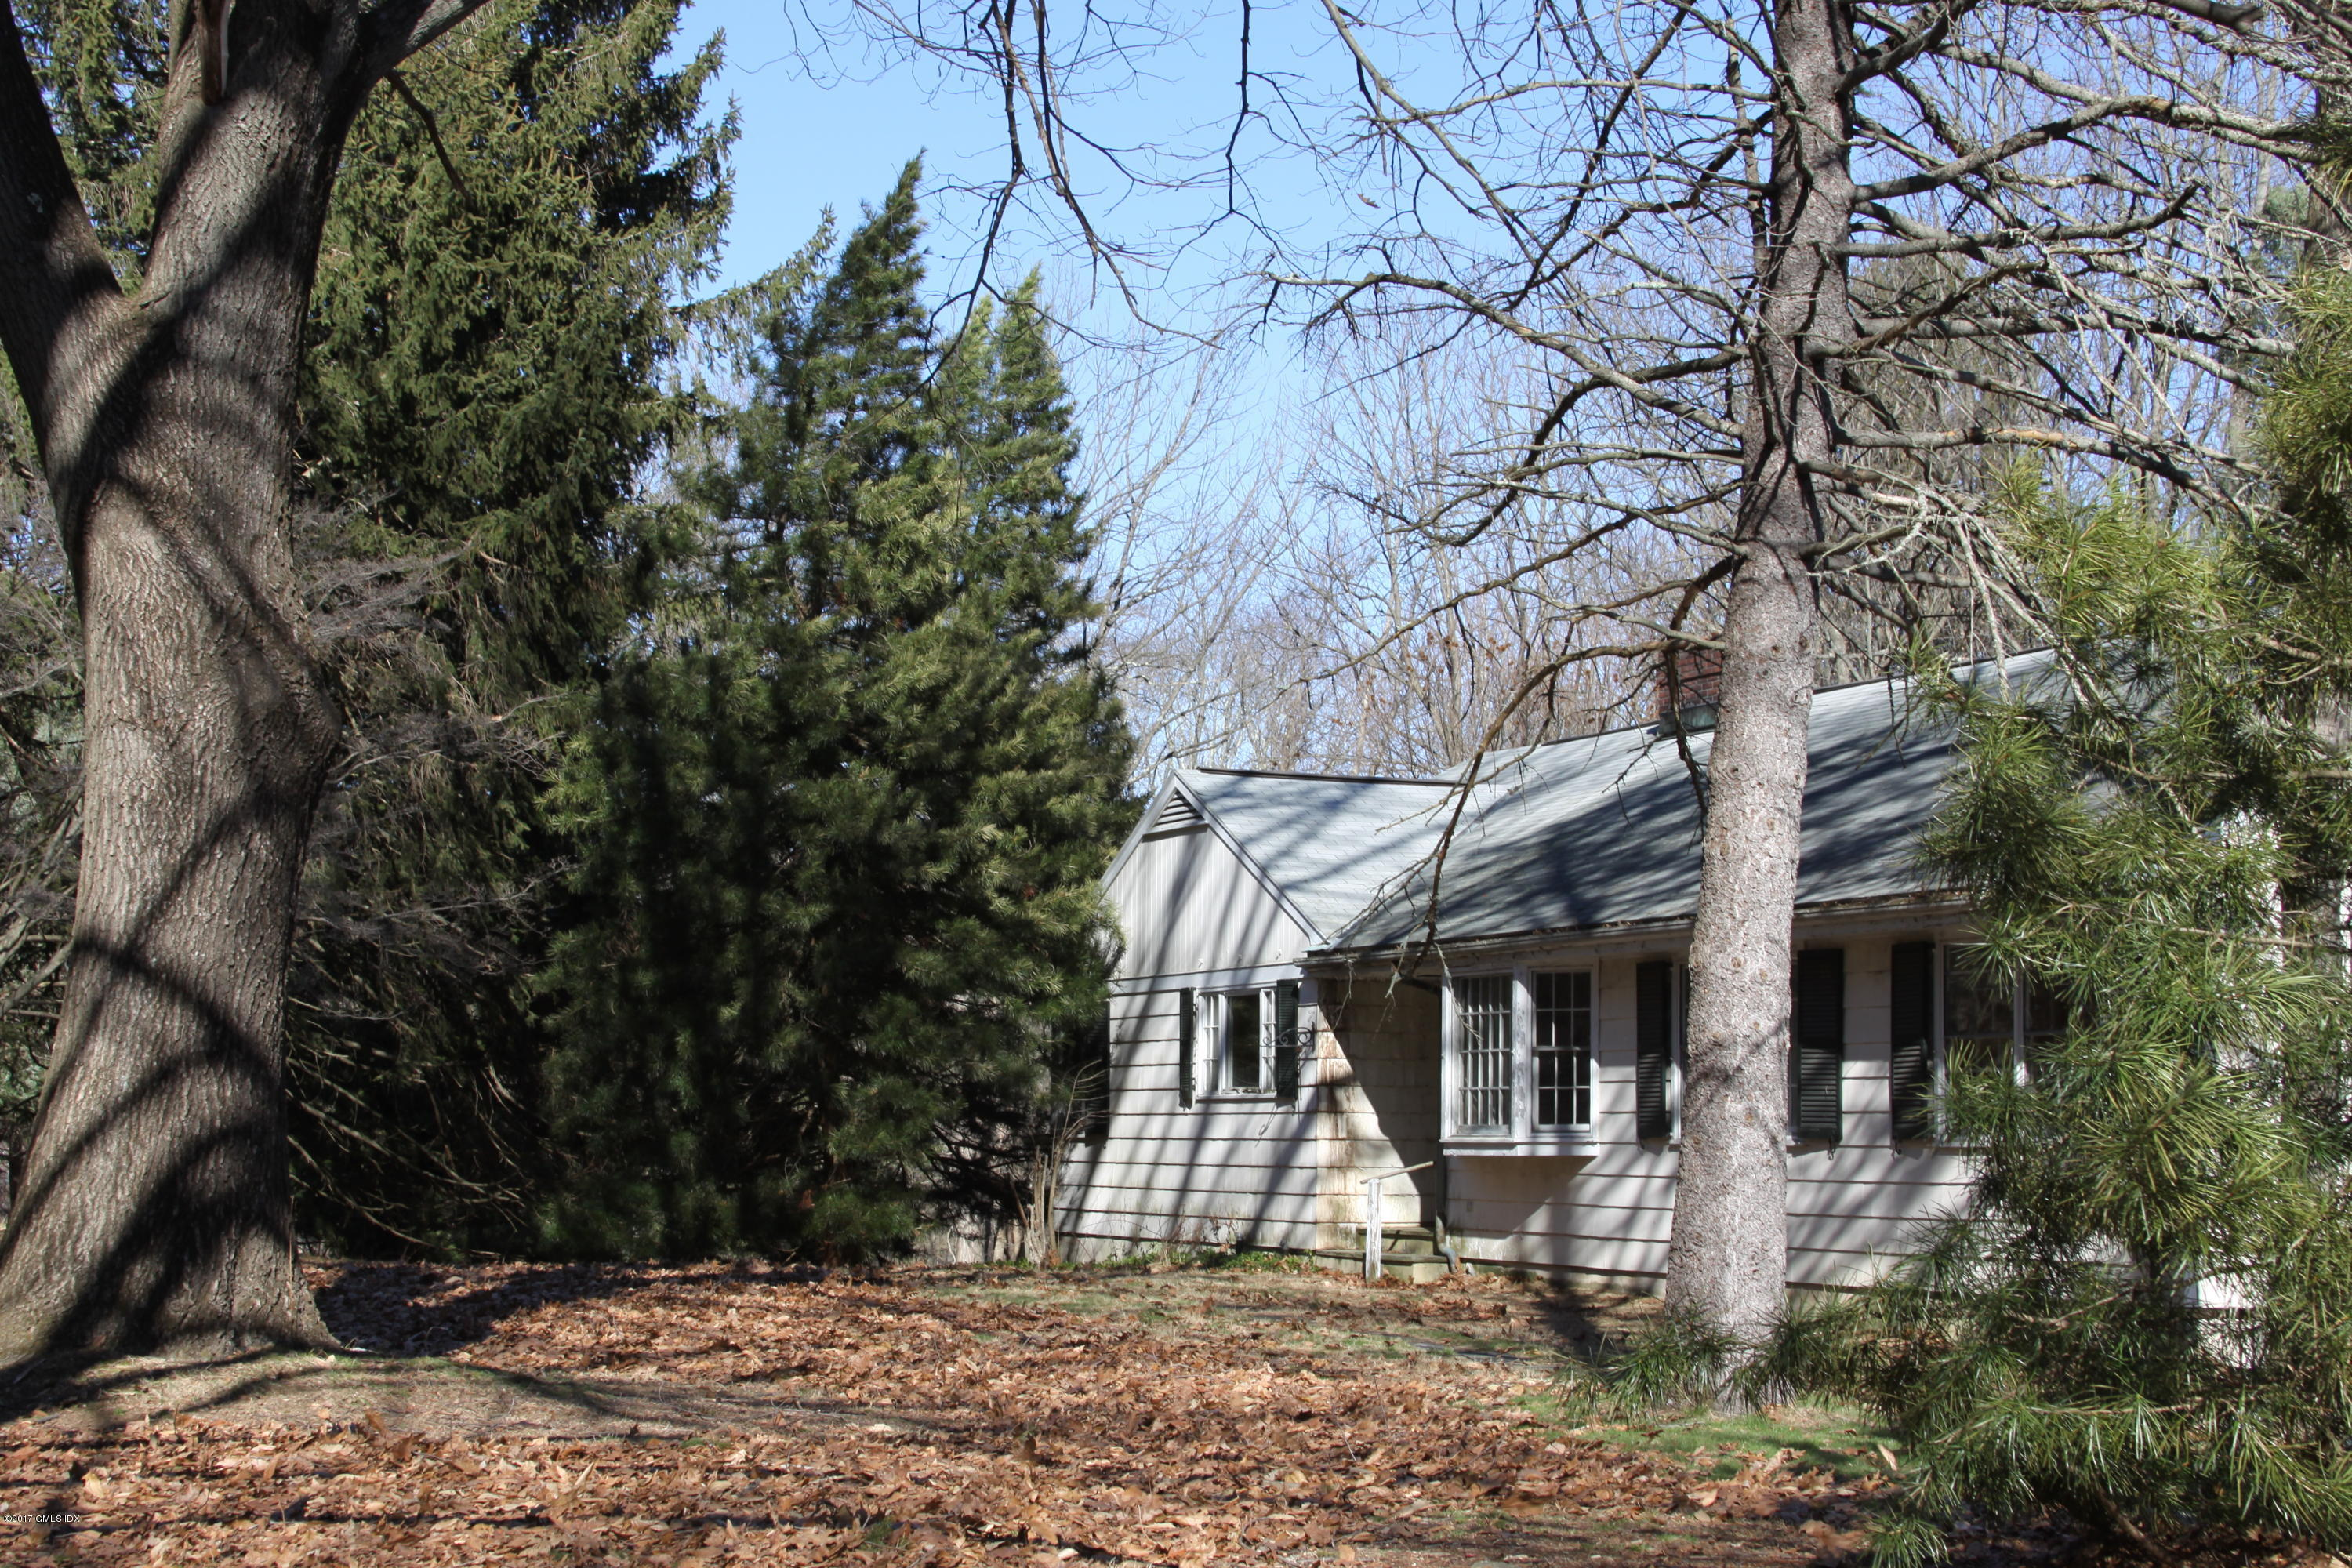 509 Stanwich Road,Greenwich,Connecticut 06831,4 Bedrooms Bedrooms,3 BathroomsBathrooms,Single family,Stanwich,104089